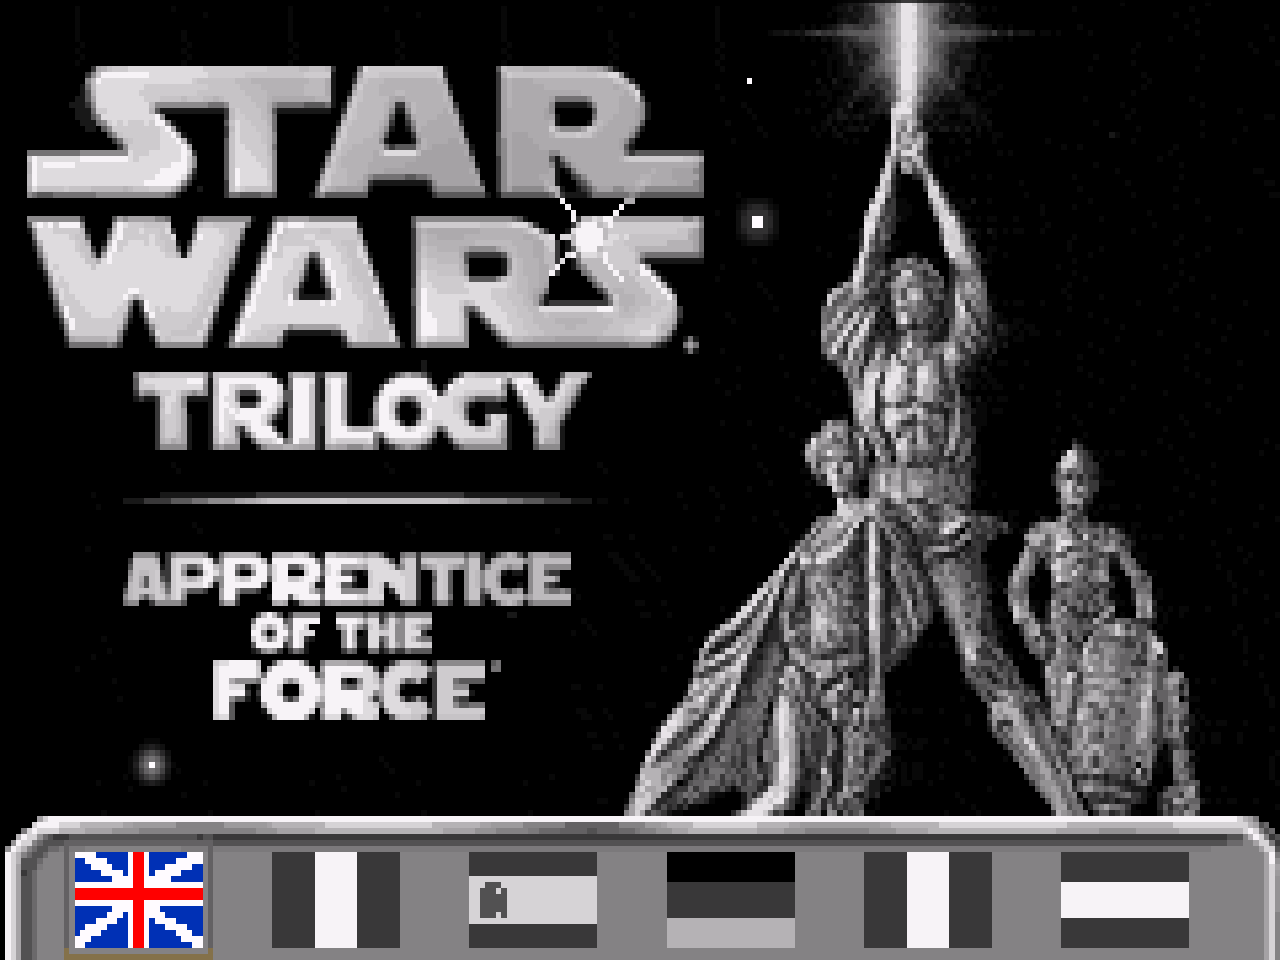 https://s3.eu-west-3.amazonaws.com/games.anthony-dessalles.com/Star Wars Trilogy Apprentice of the Force GBA 2020 - Screenshots/Star Wars Trilogy Apprentice of the Force-201114-185824.png